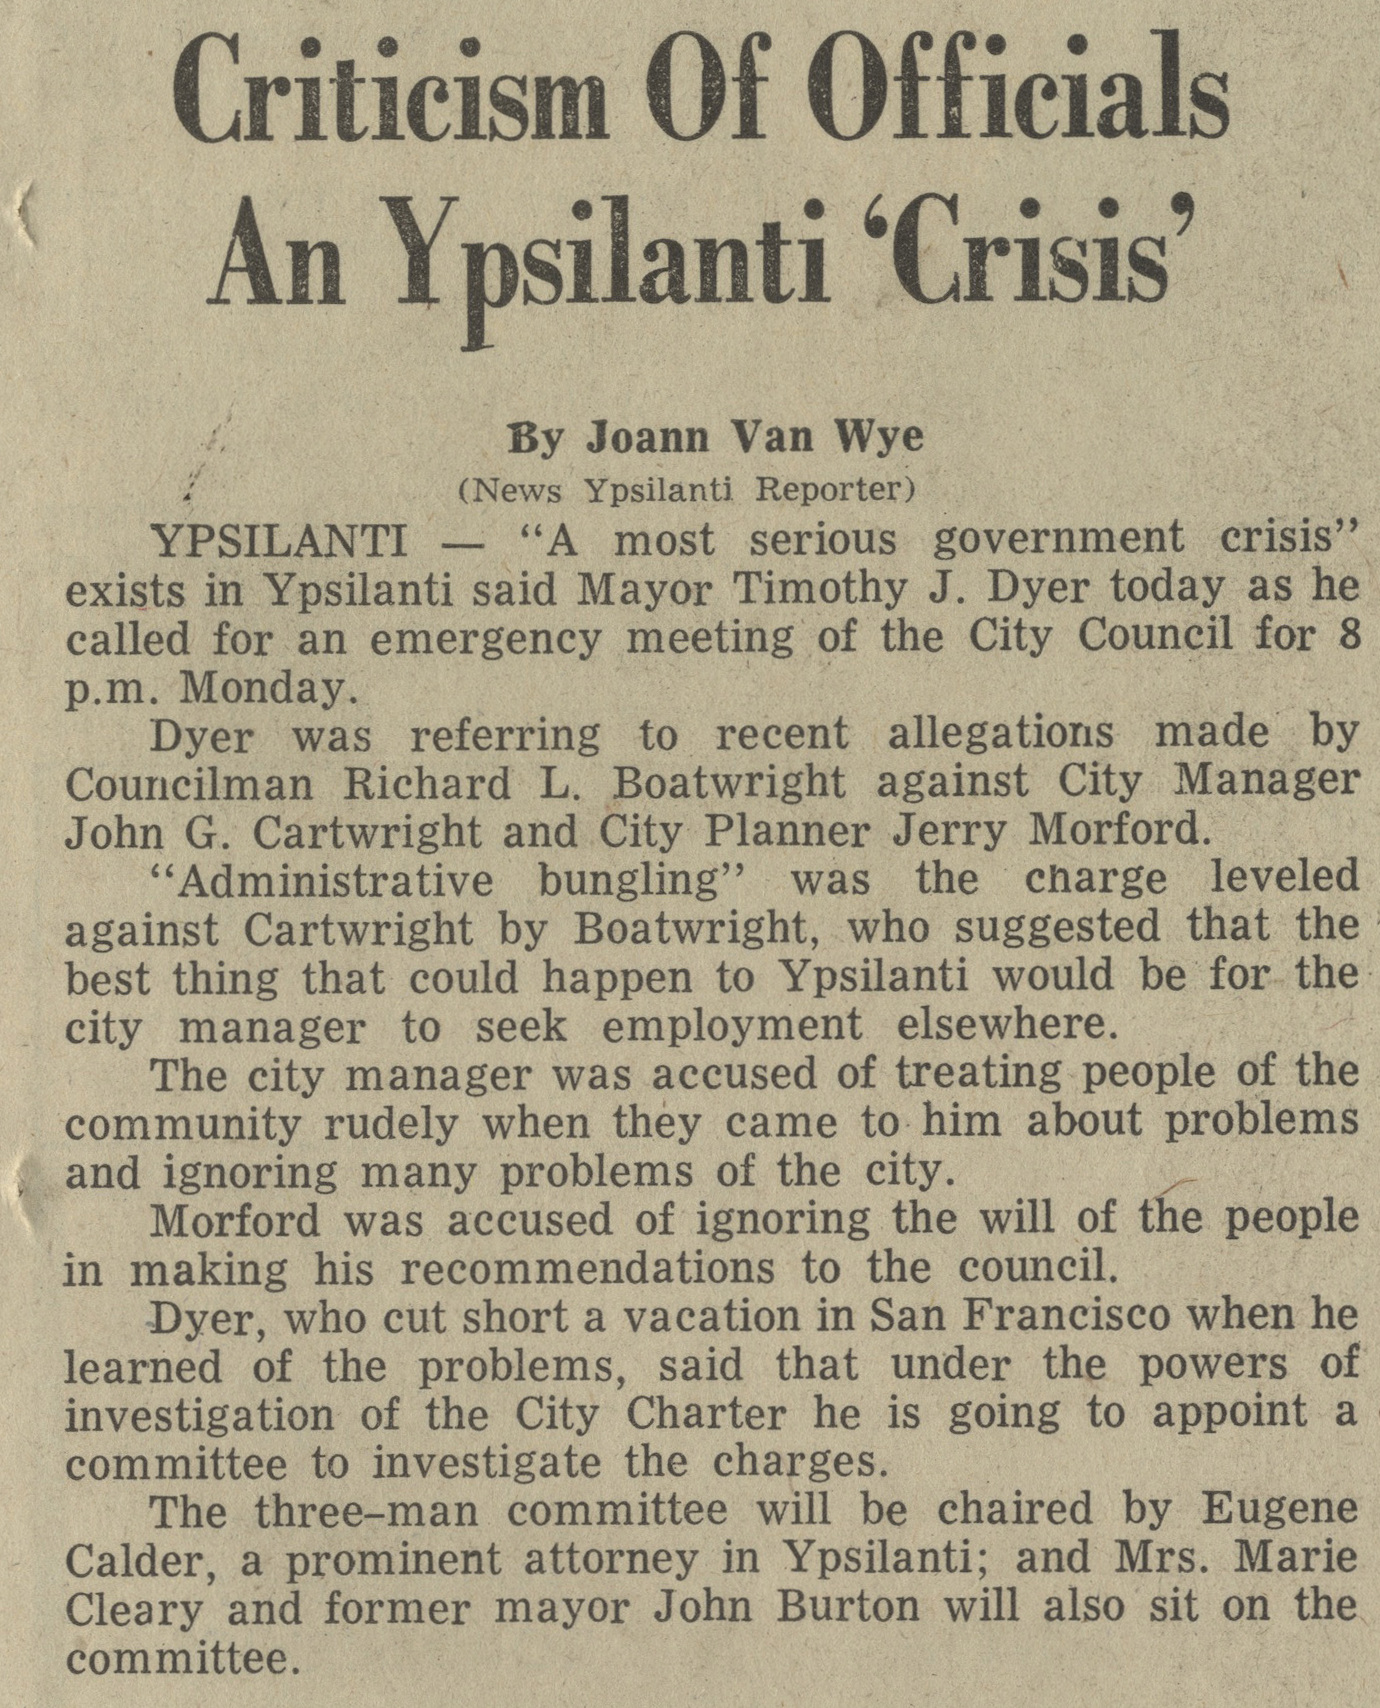 Criticism Of Officials An Ypsilanti ' Crisis'  image